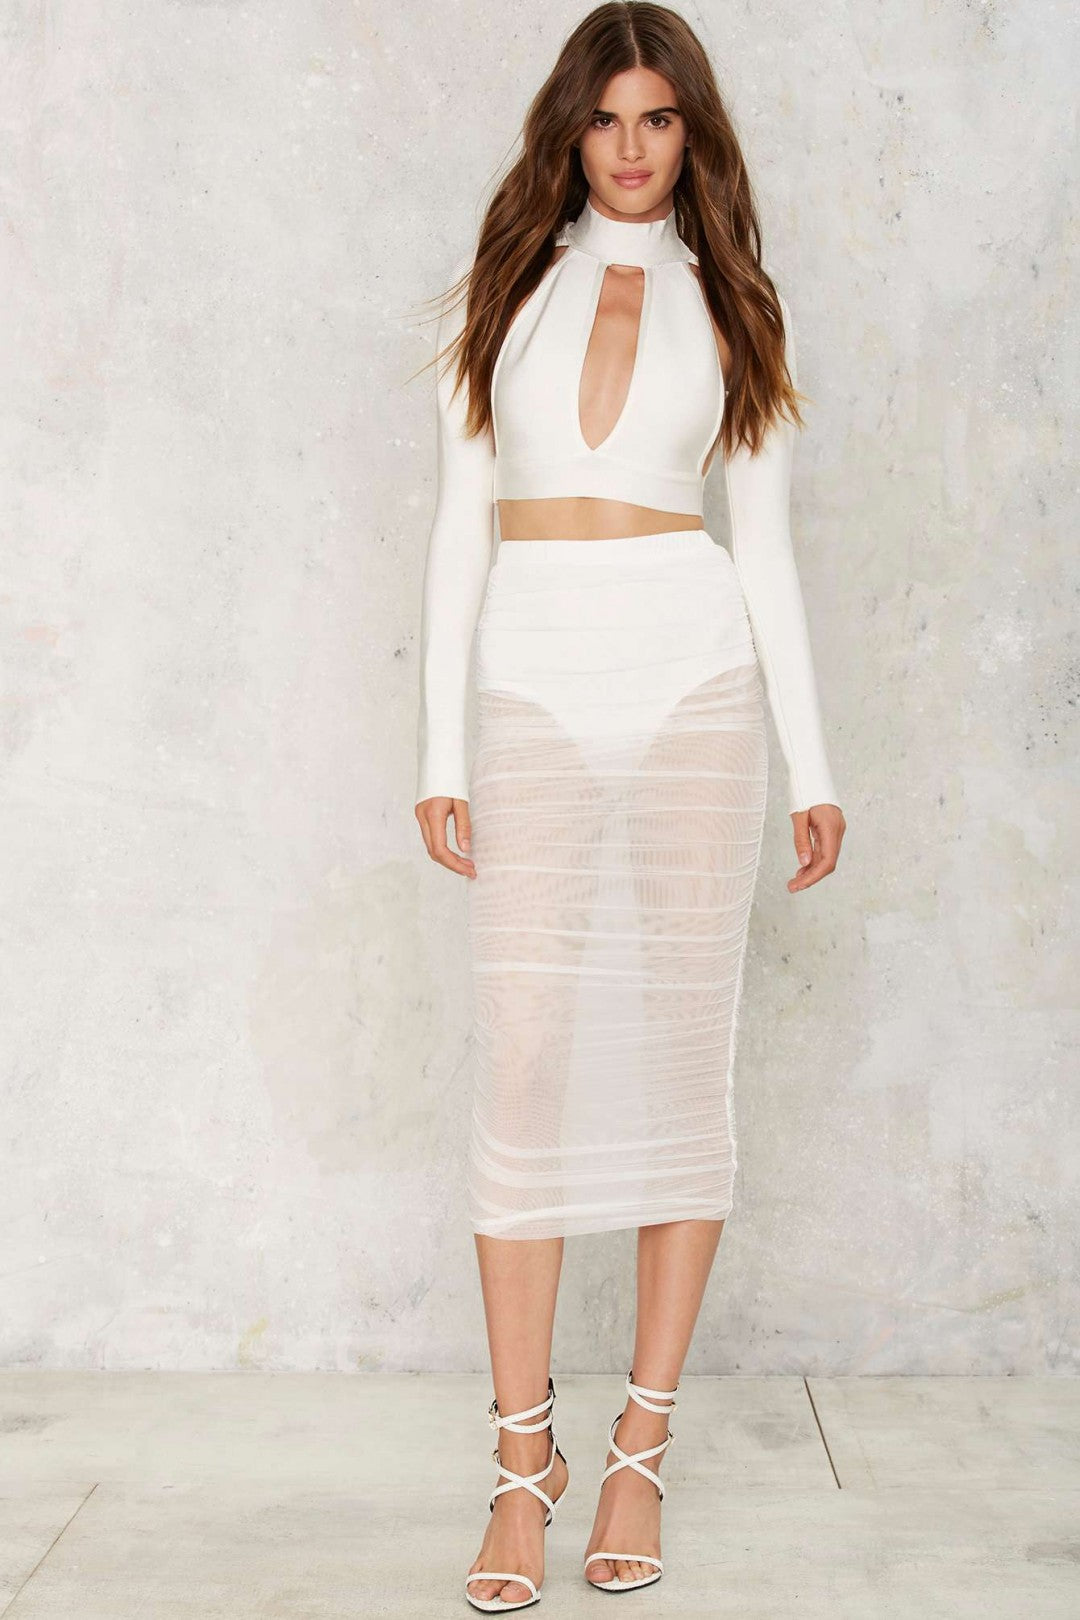 Sheer Mesh Skirt (white) zoomed